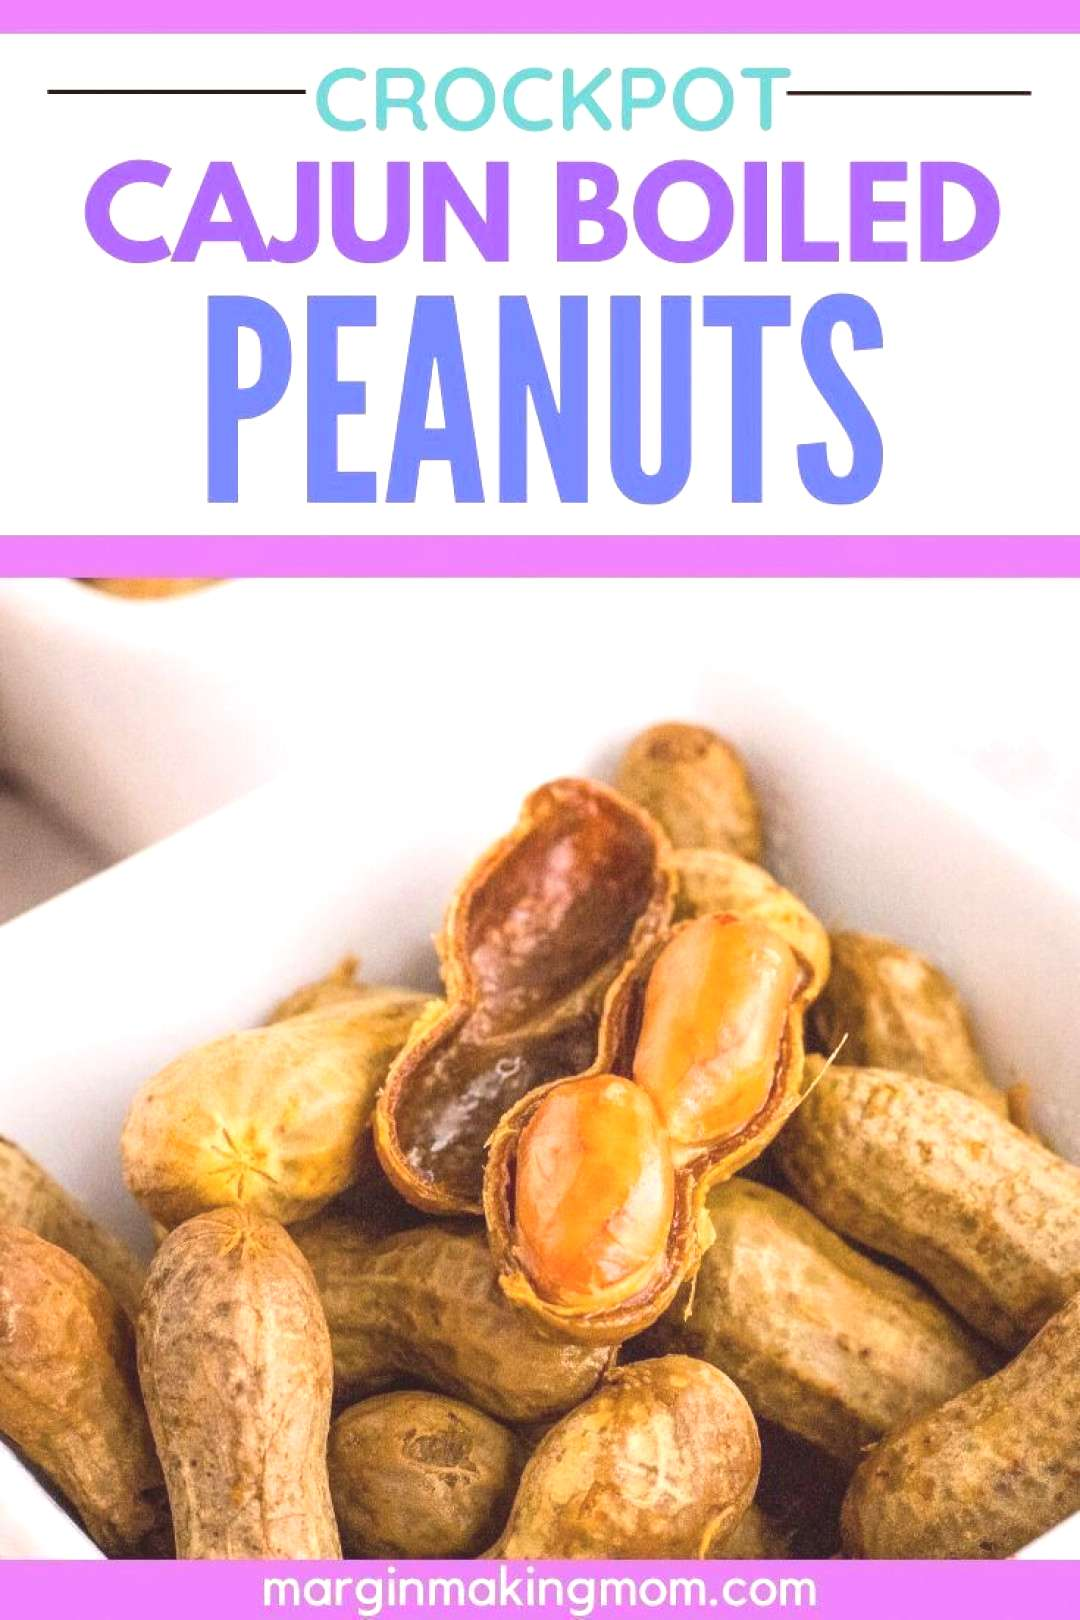 Spicy Cajun boiled peanuts are a great snack and party food--and you can make them in your Crockpot